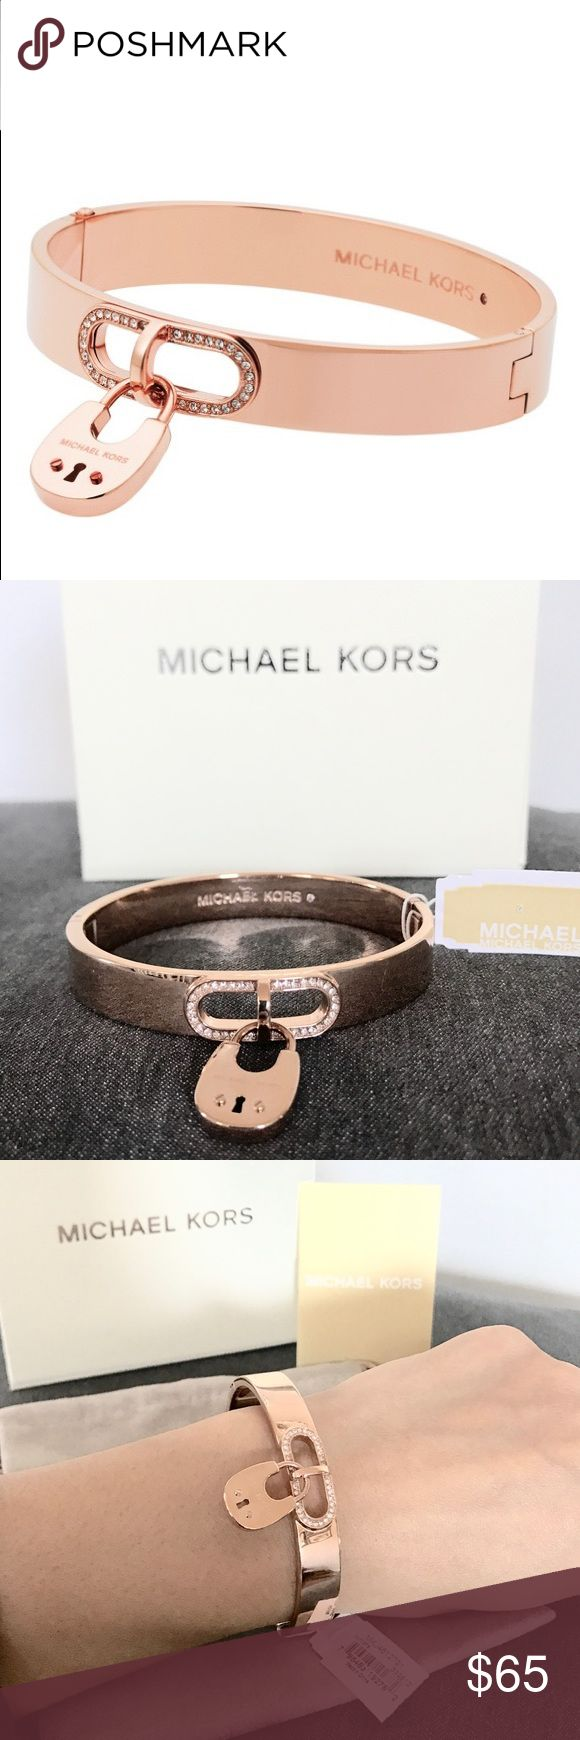 New Authentic MK rose gold tone Padlock bracelet Beautiful Michael Kors bracelet. Featuring a rose gold tone bangle with padlock charm with engraved logo and crystal stone embellishment. It is secured with hinged snap closure. Michael Kors Jewelry Bracelets